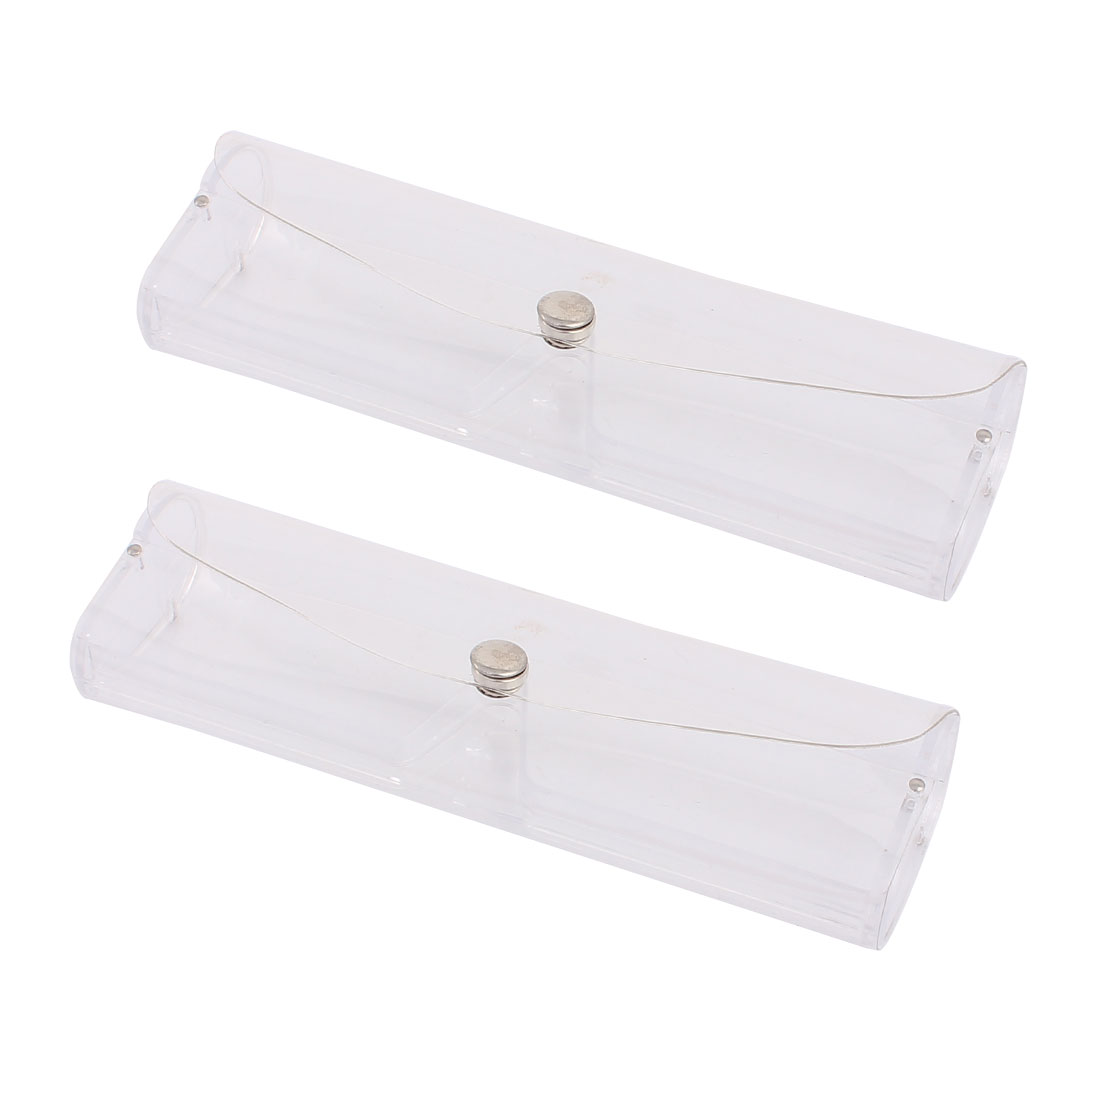 2 Pcs Clear Transparent Plastic Eyeglasses Cases Glasses Case Bag